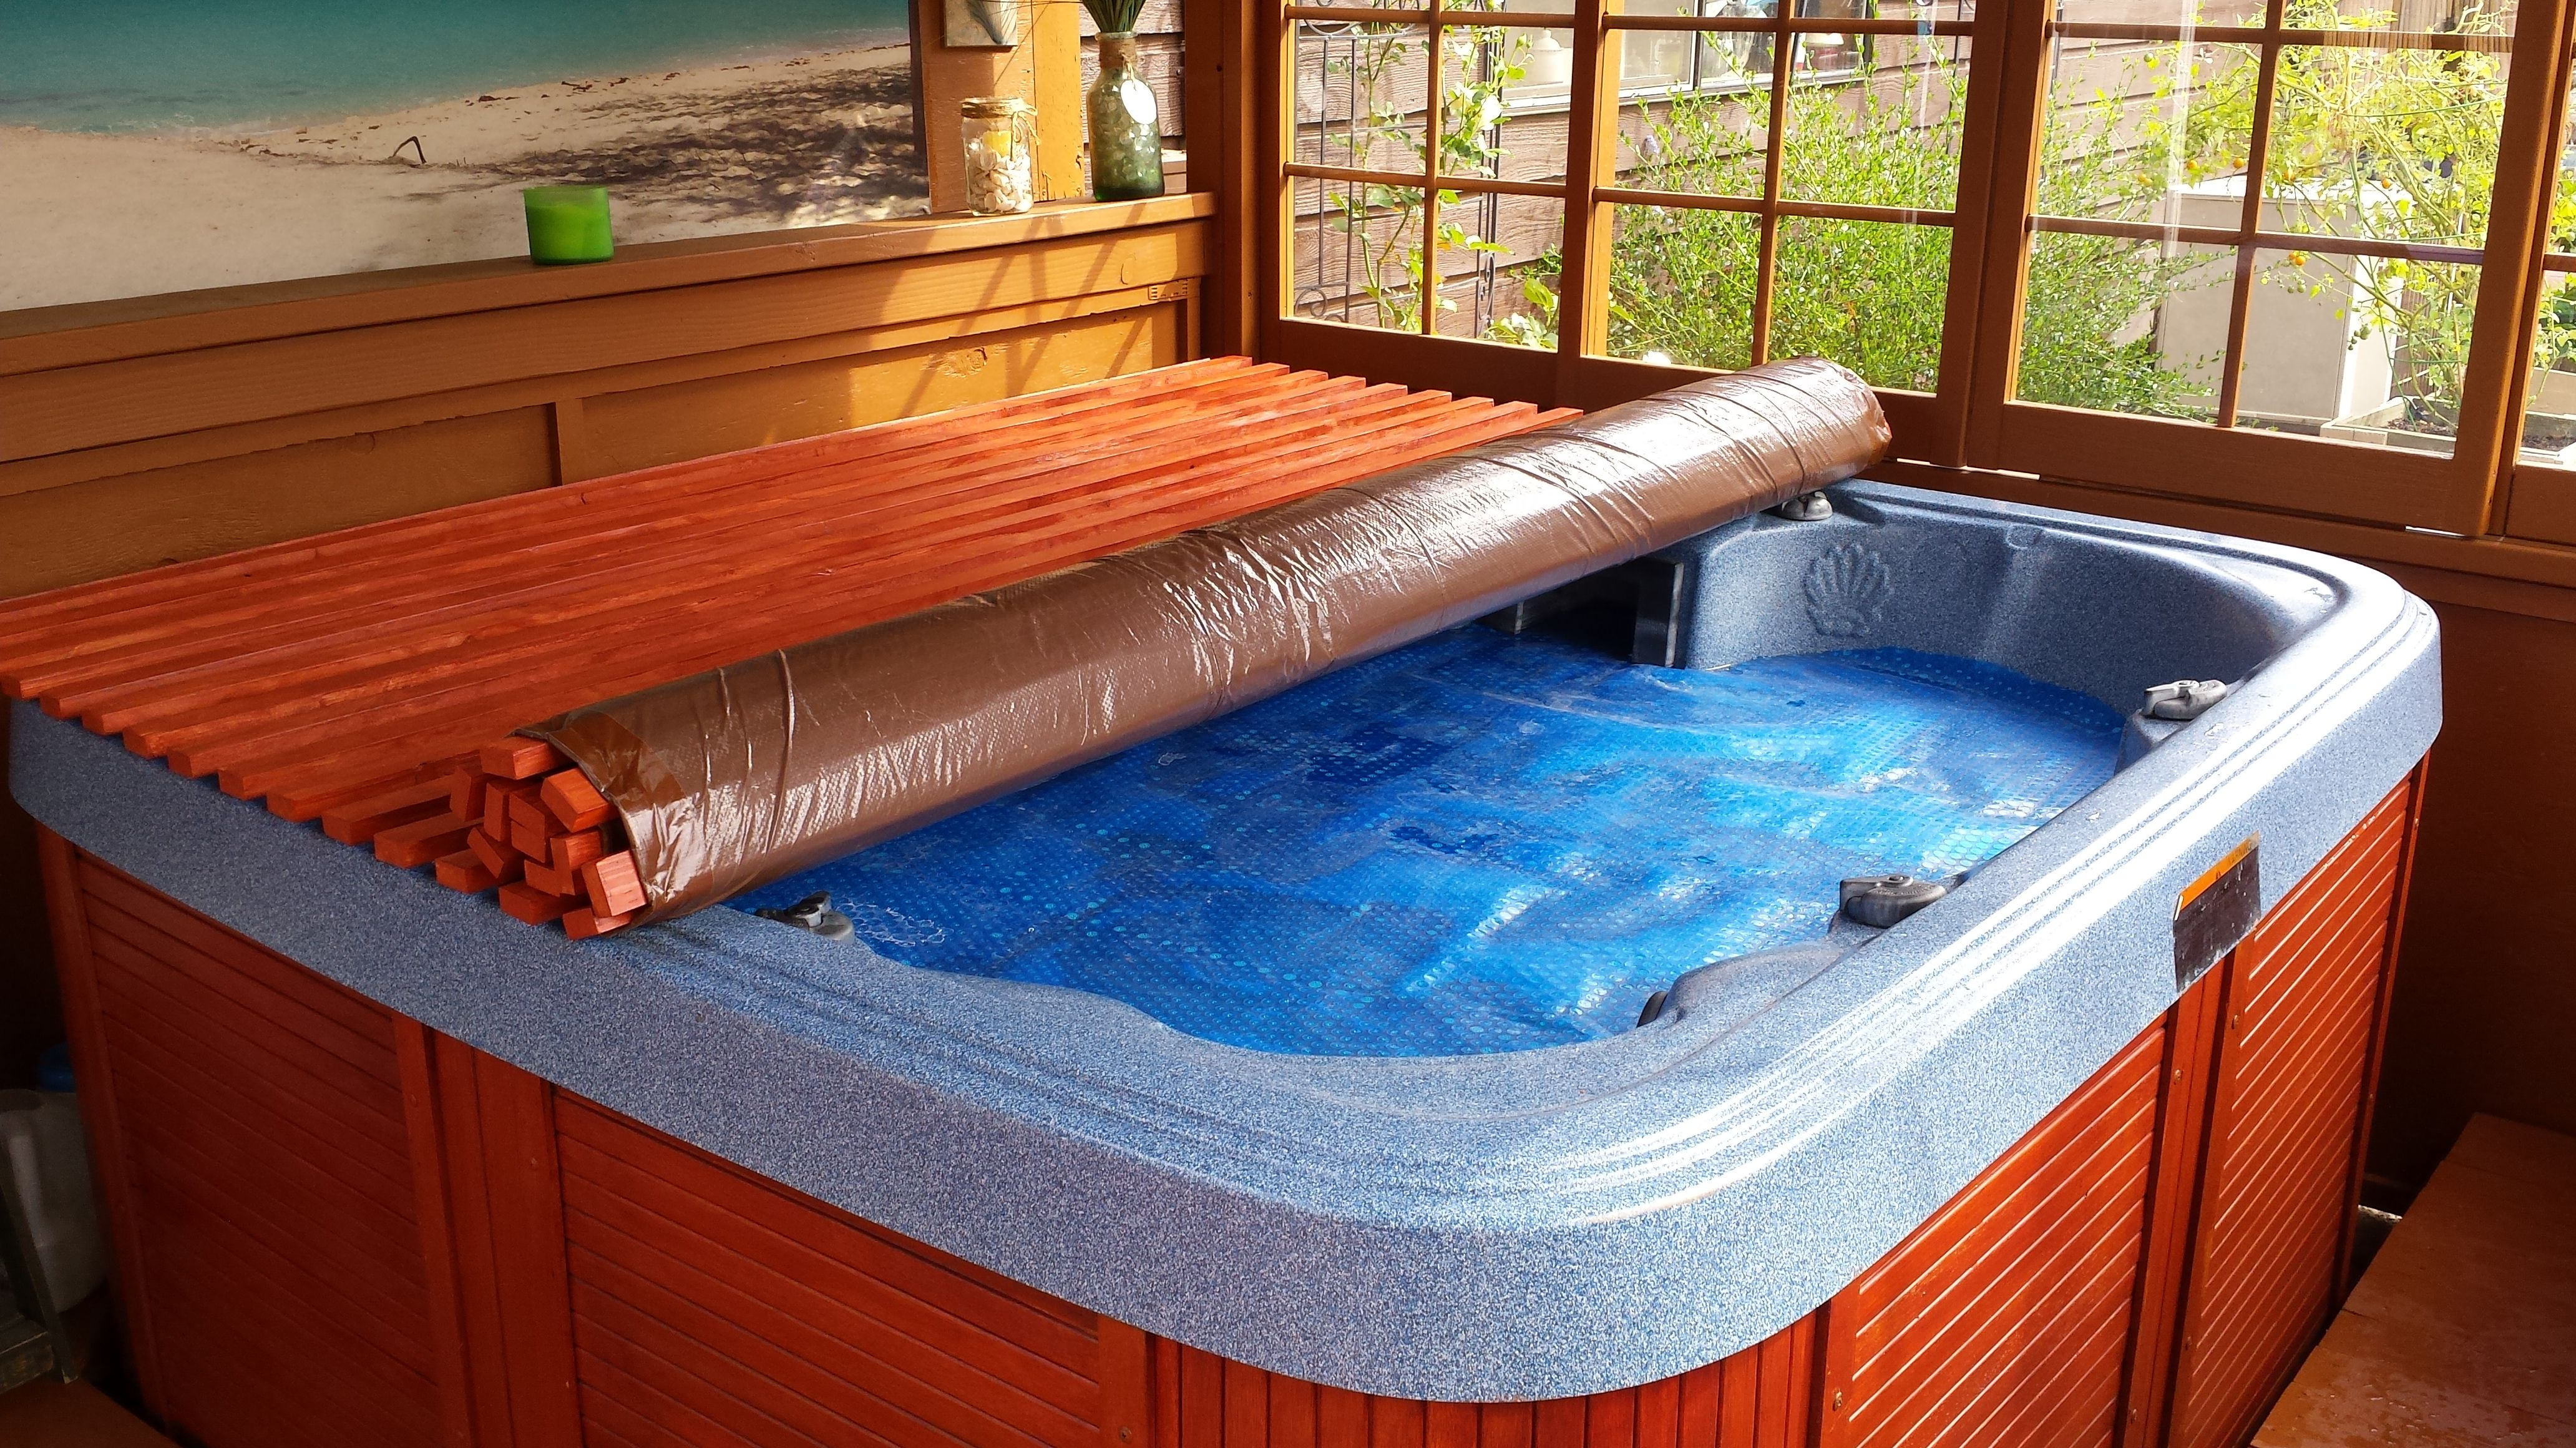 Jacuzzi Pool Covers Diy Hot Tub Cover Around The House Hot Tub Backyard Hot Tub